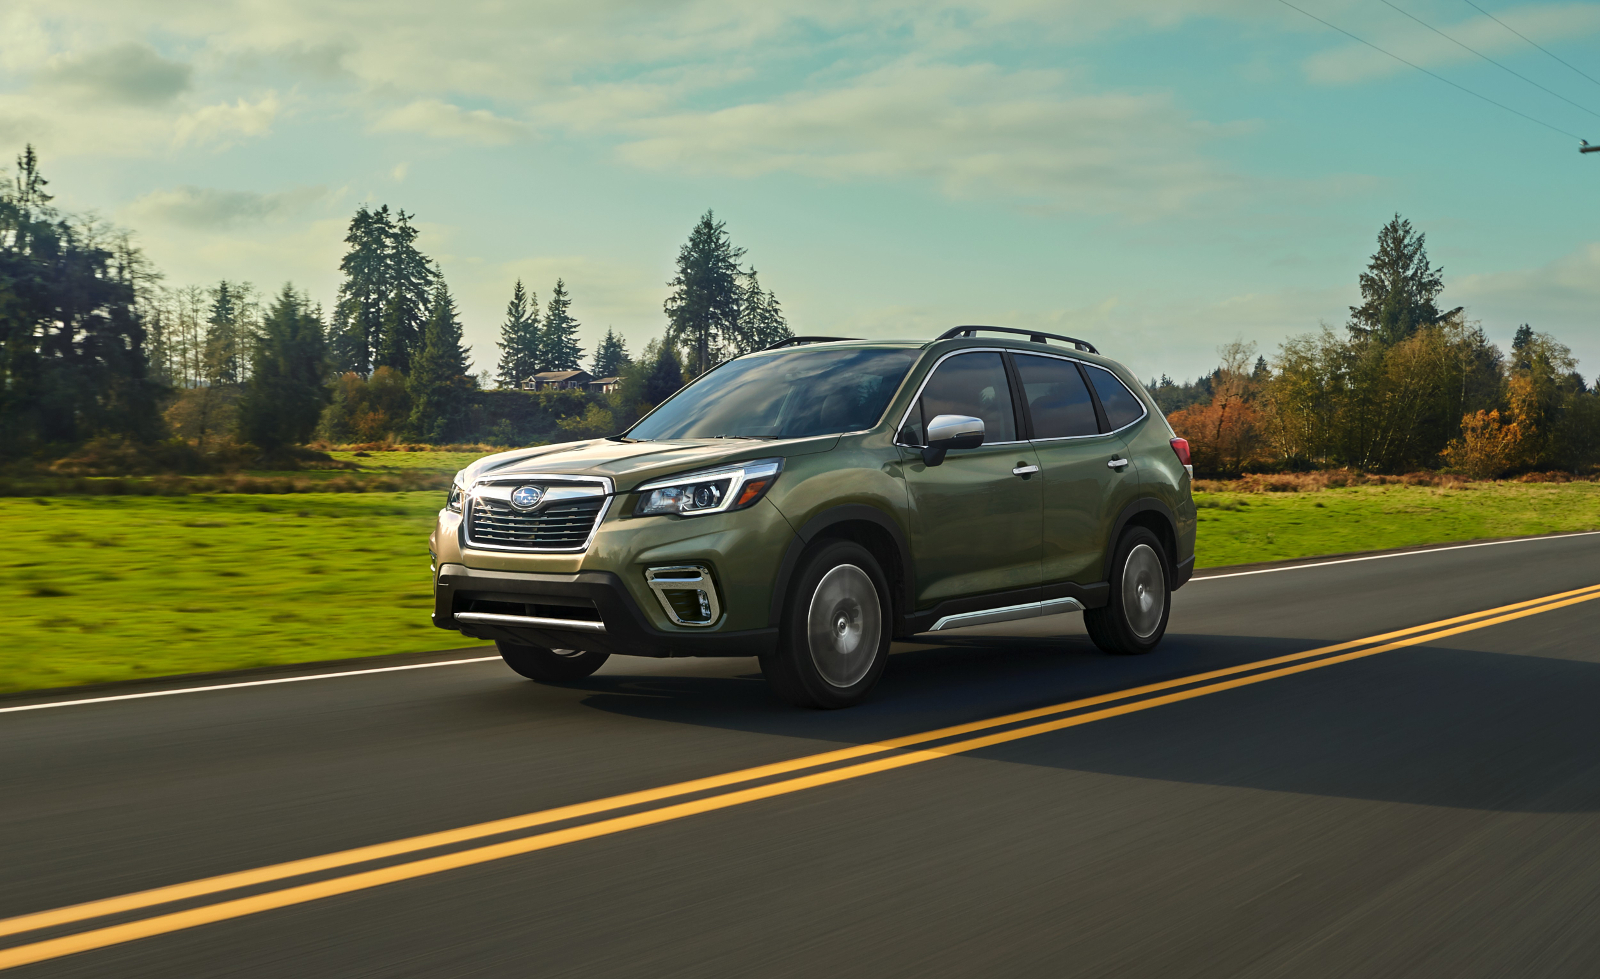 The 2019 Subaru Forester Introduces Facial Recognition